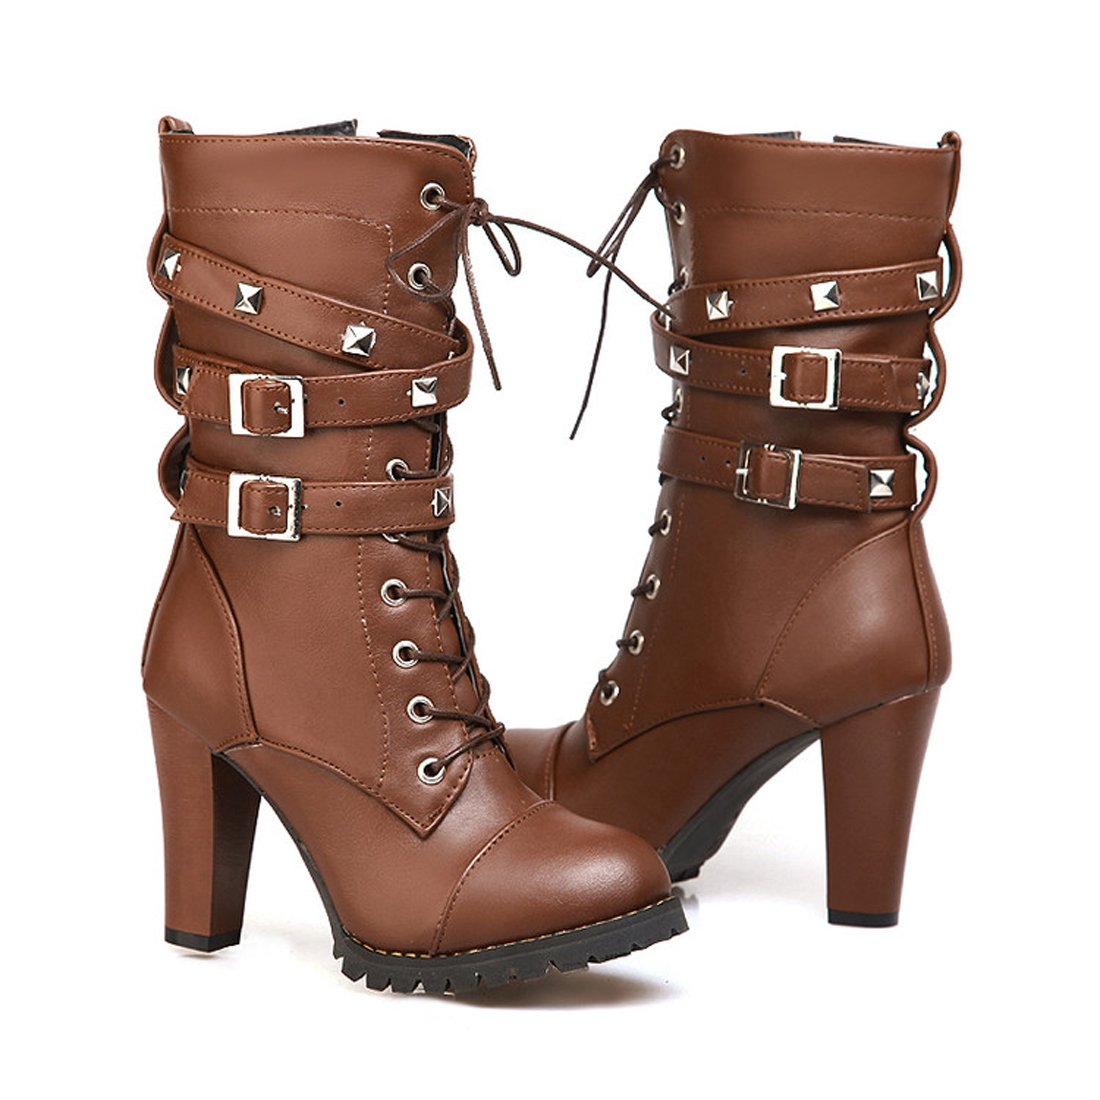 Mostrin Women Motorcycle High Heels Punk Buckle Rivet Strap Combat Military Mid Calf Boots WLL0826-2